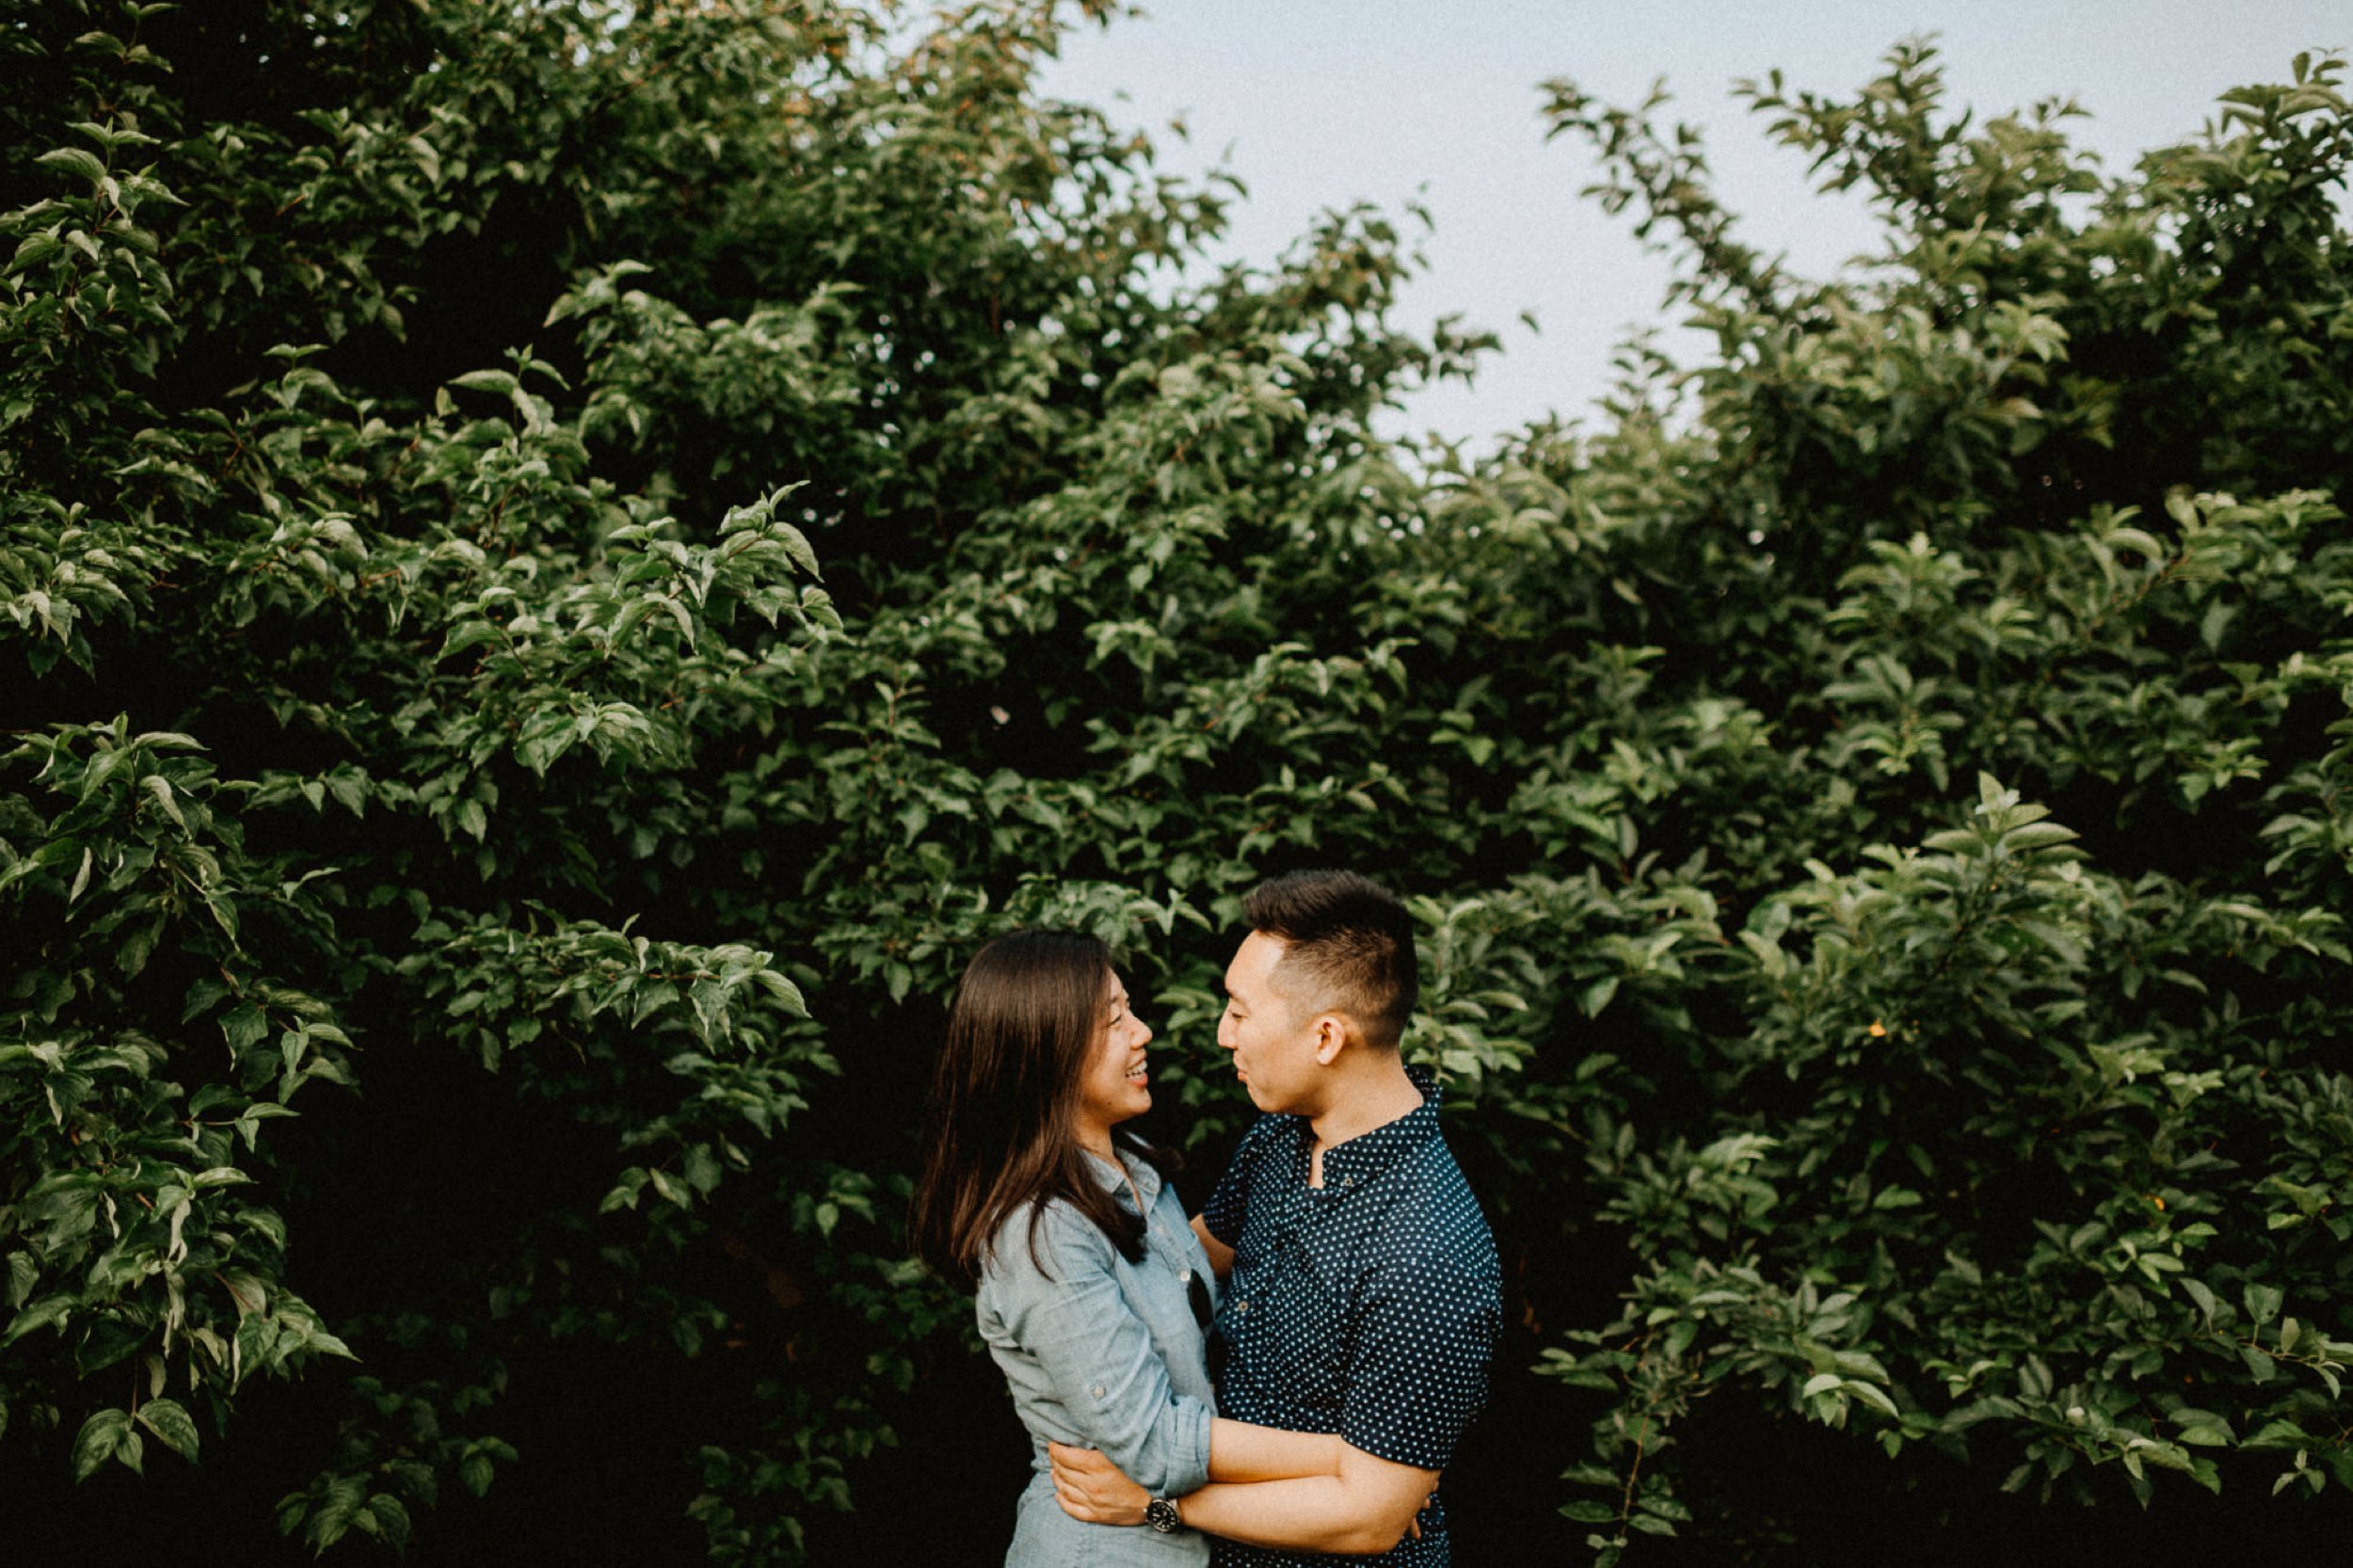 philly_engagement_session-16.jpg